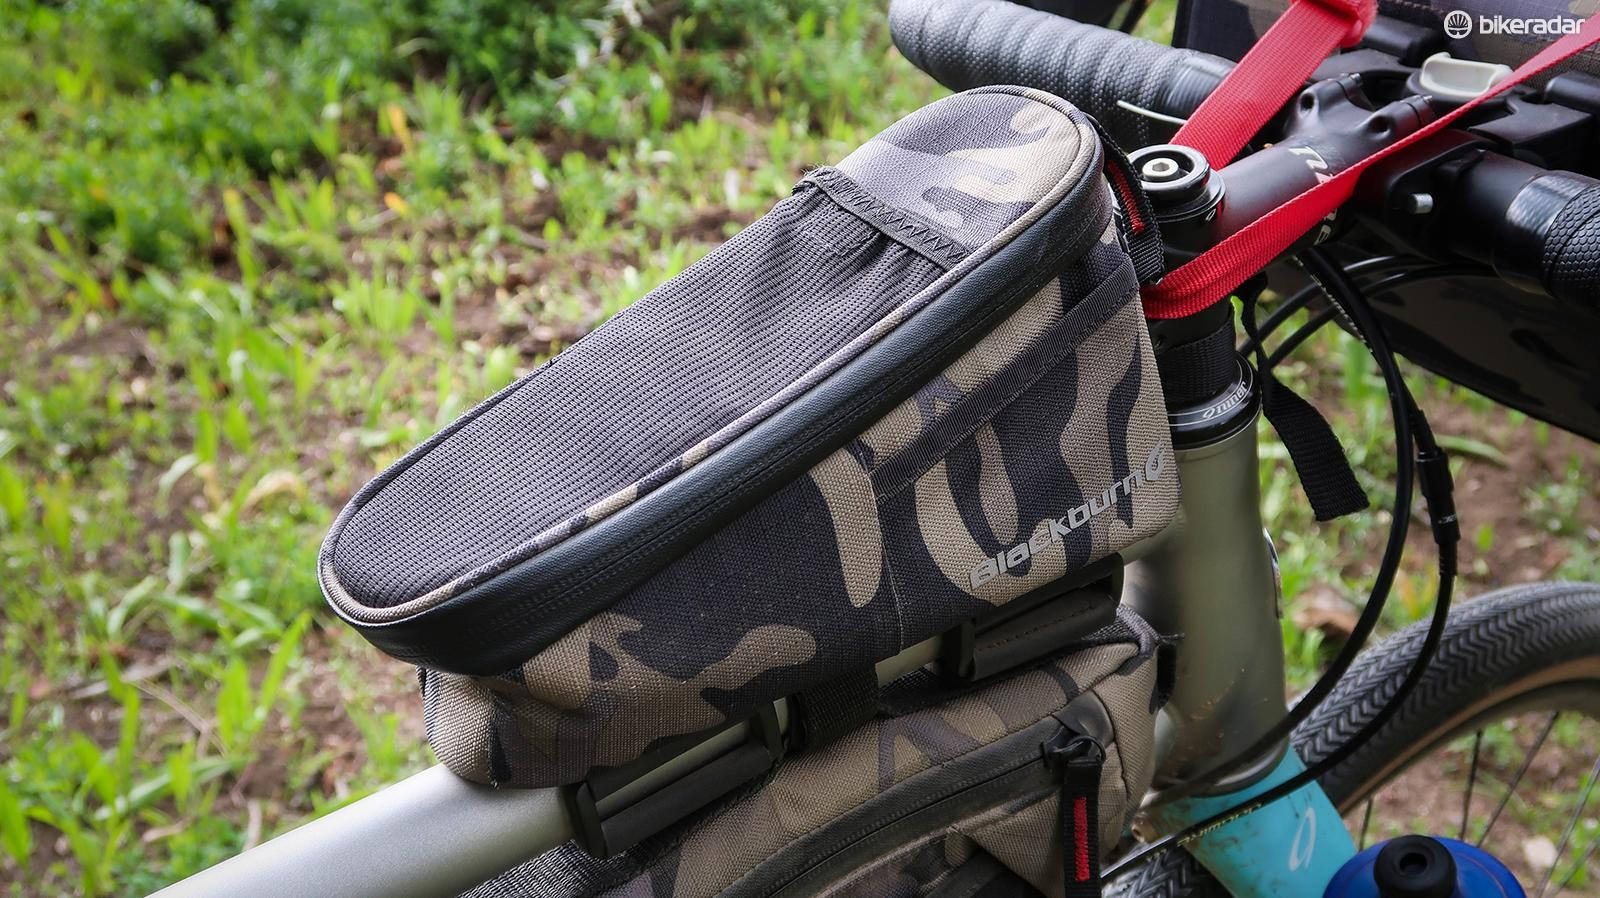 The Outpost top tube bag is handy for carrying mid-ride essentials